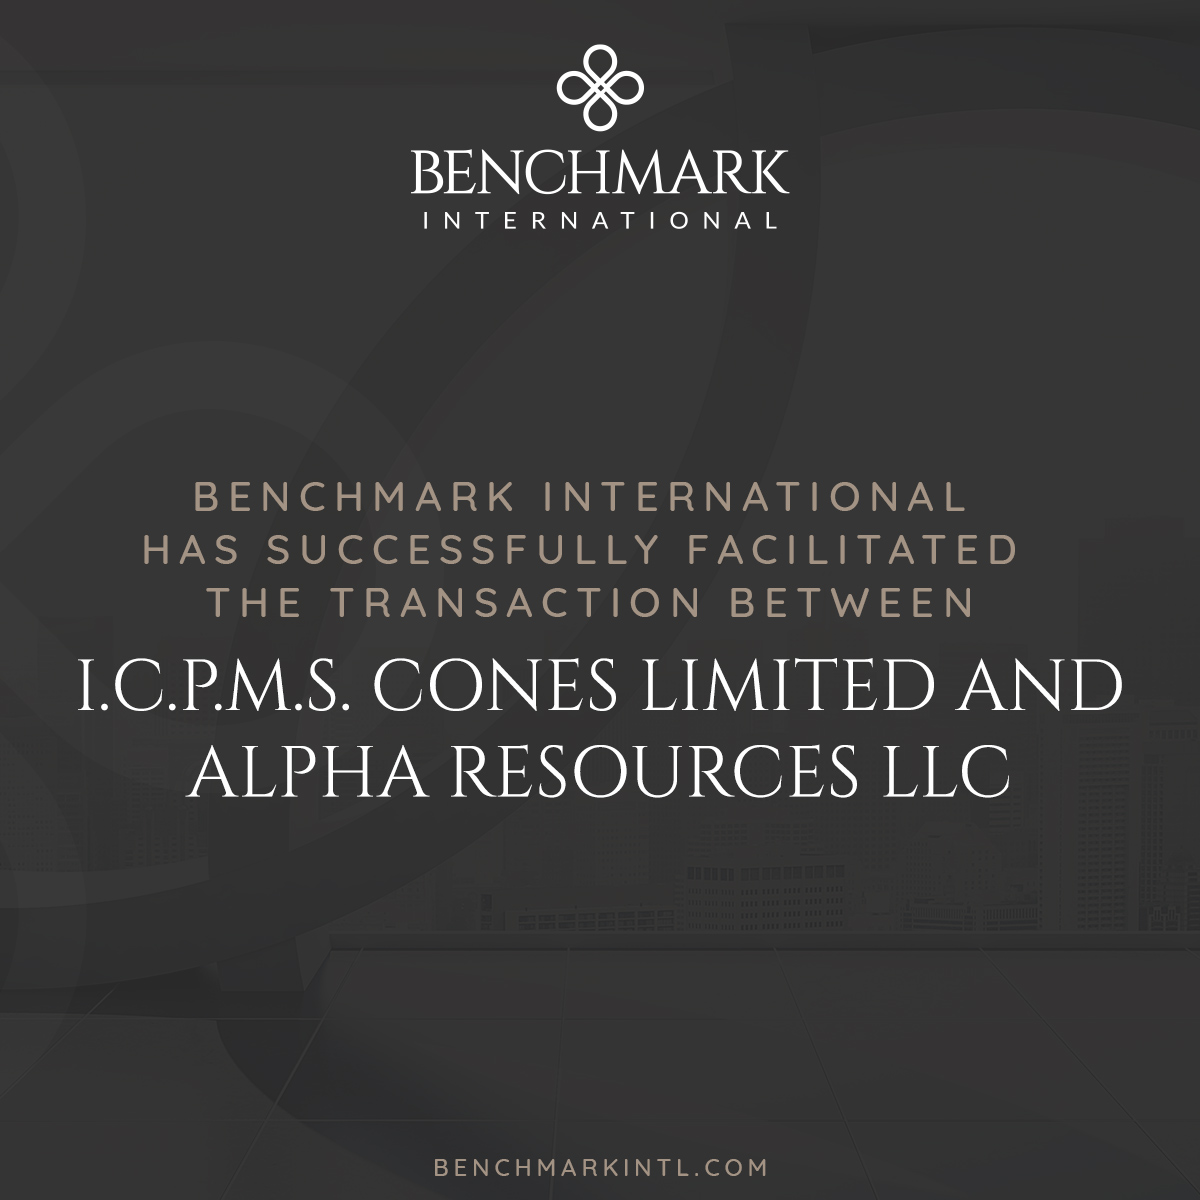 IPCMS Cones acquired by Alpha Resources